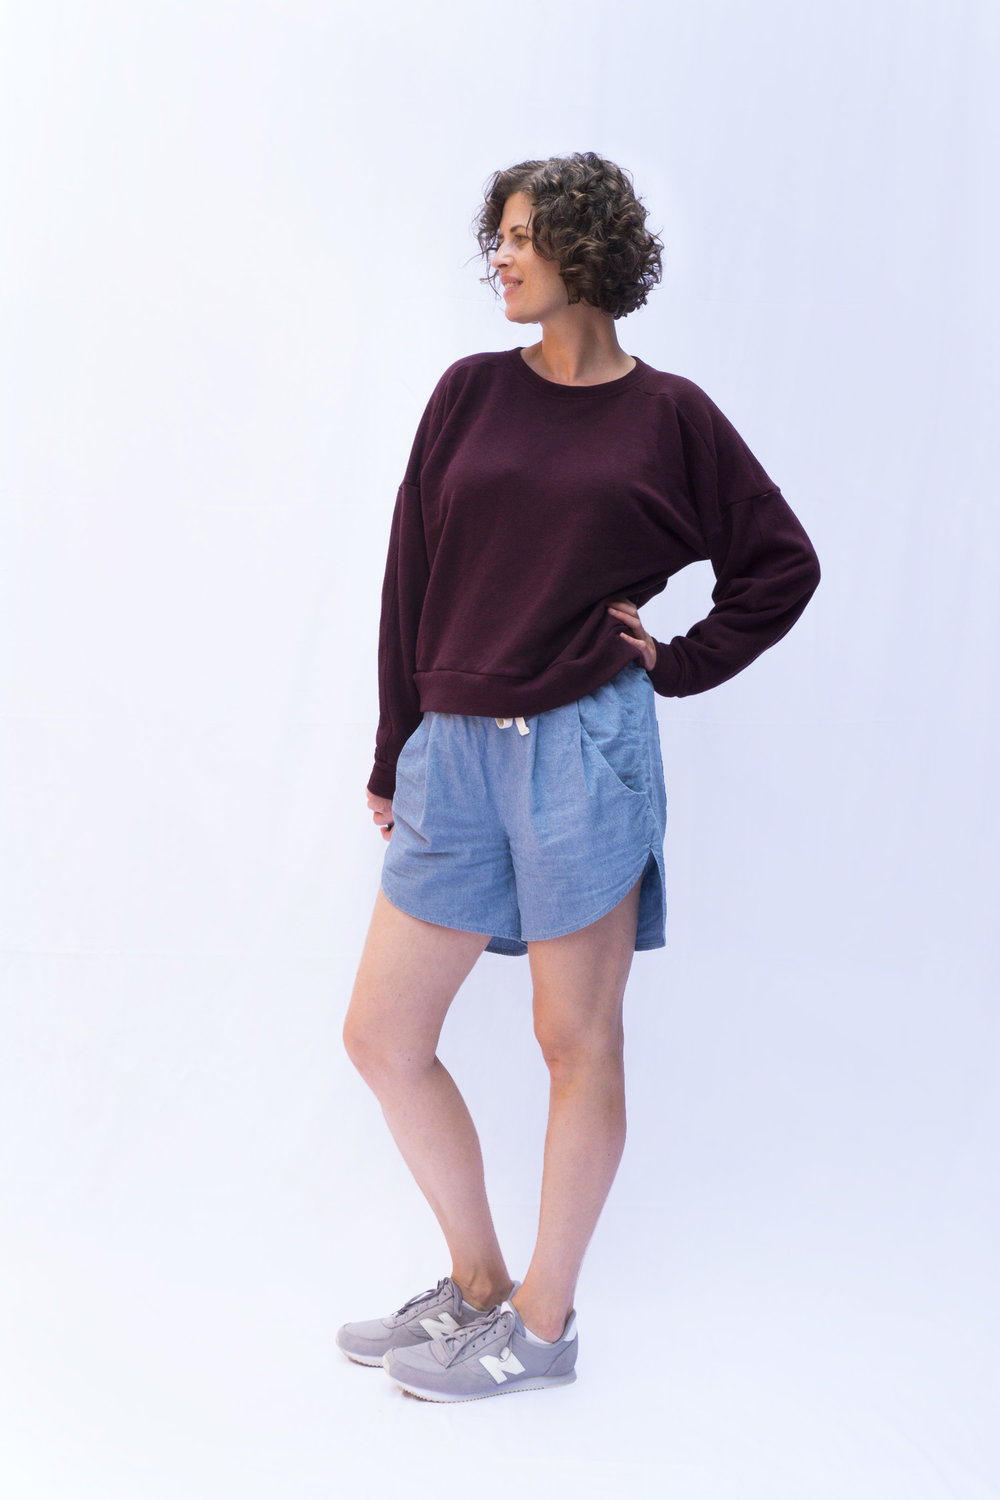 Ali Sweatshirt View A | Sew DIY